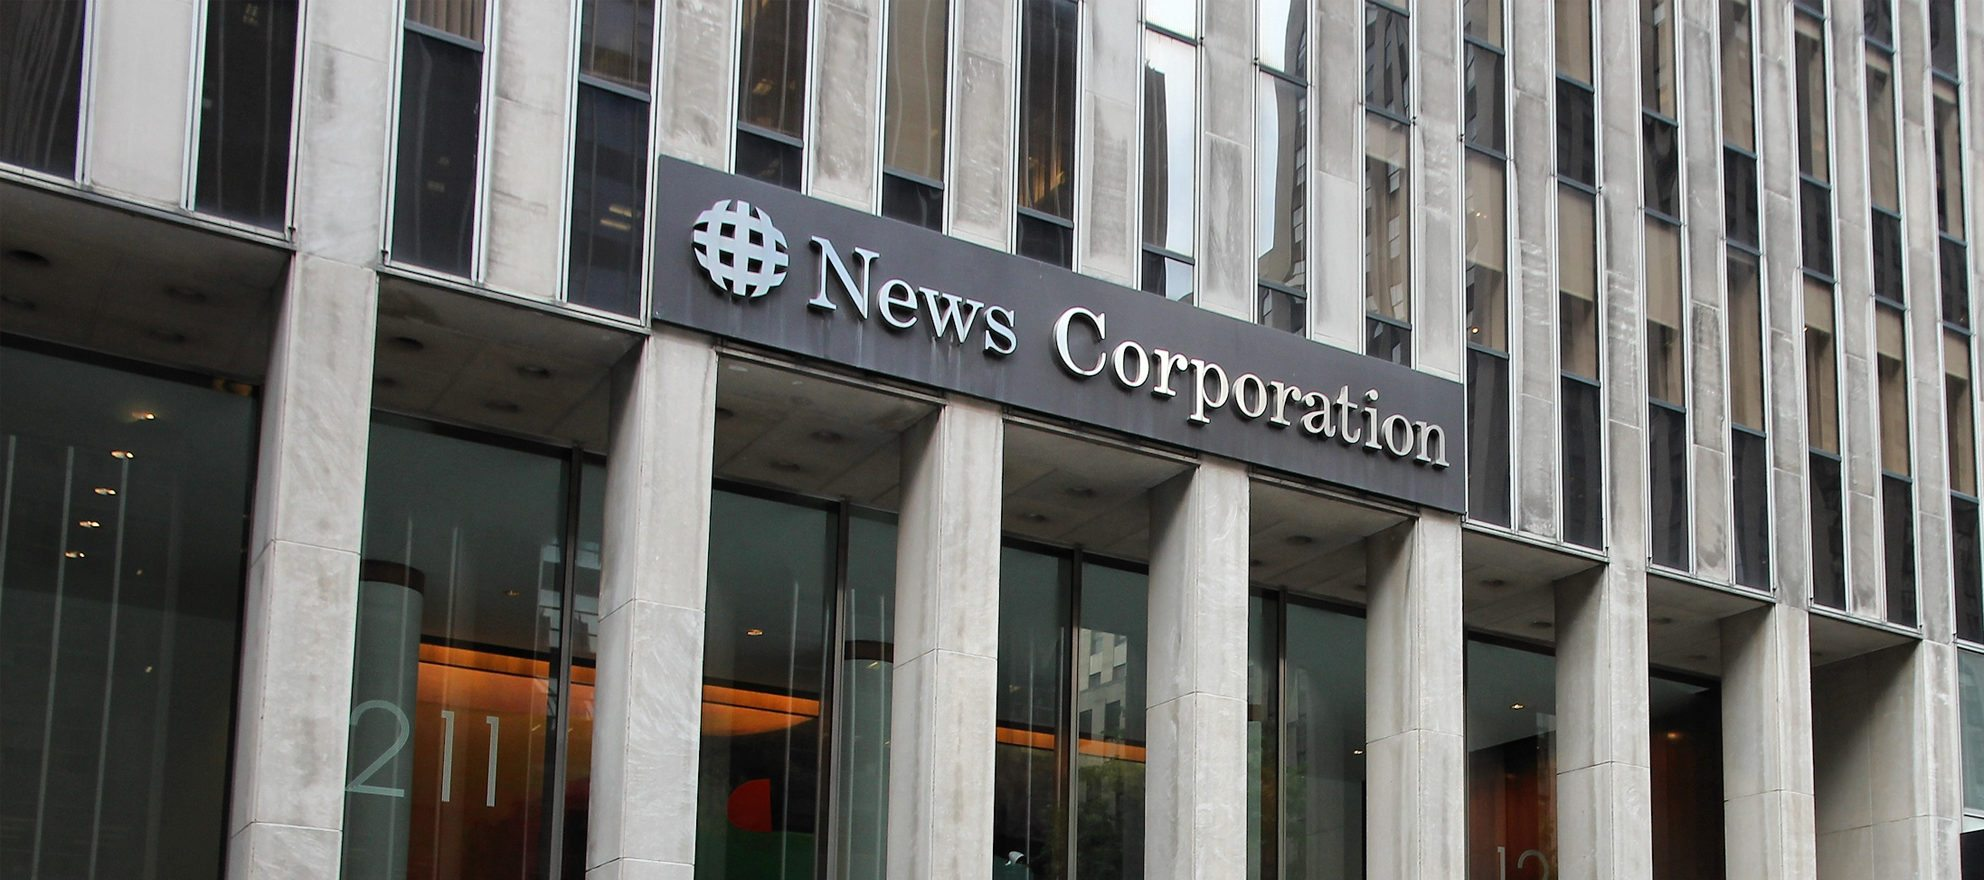 Digital real estate revenue now 'core to character' of News Corp